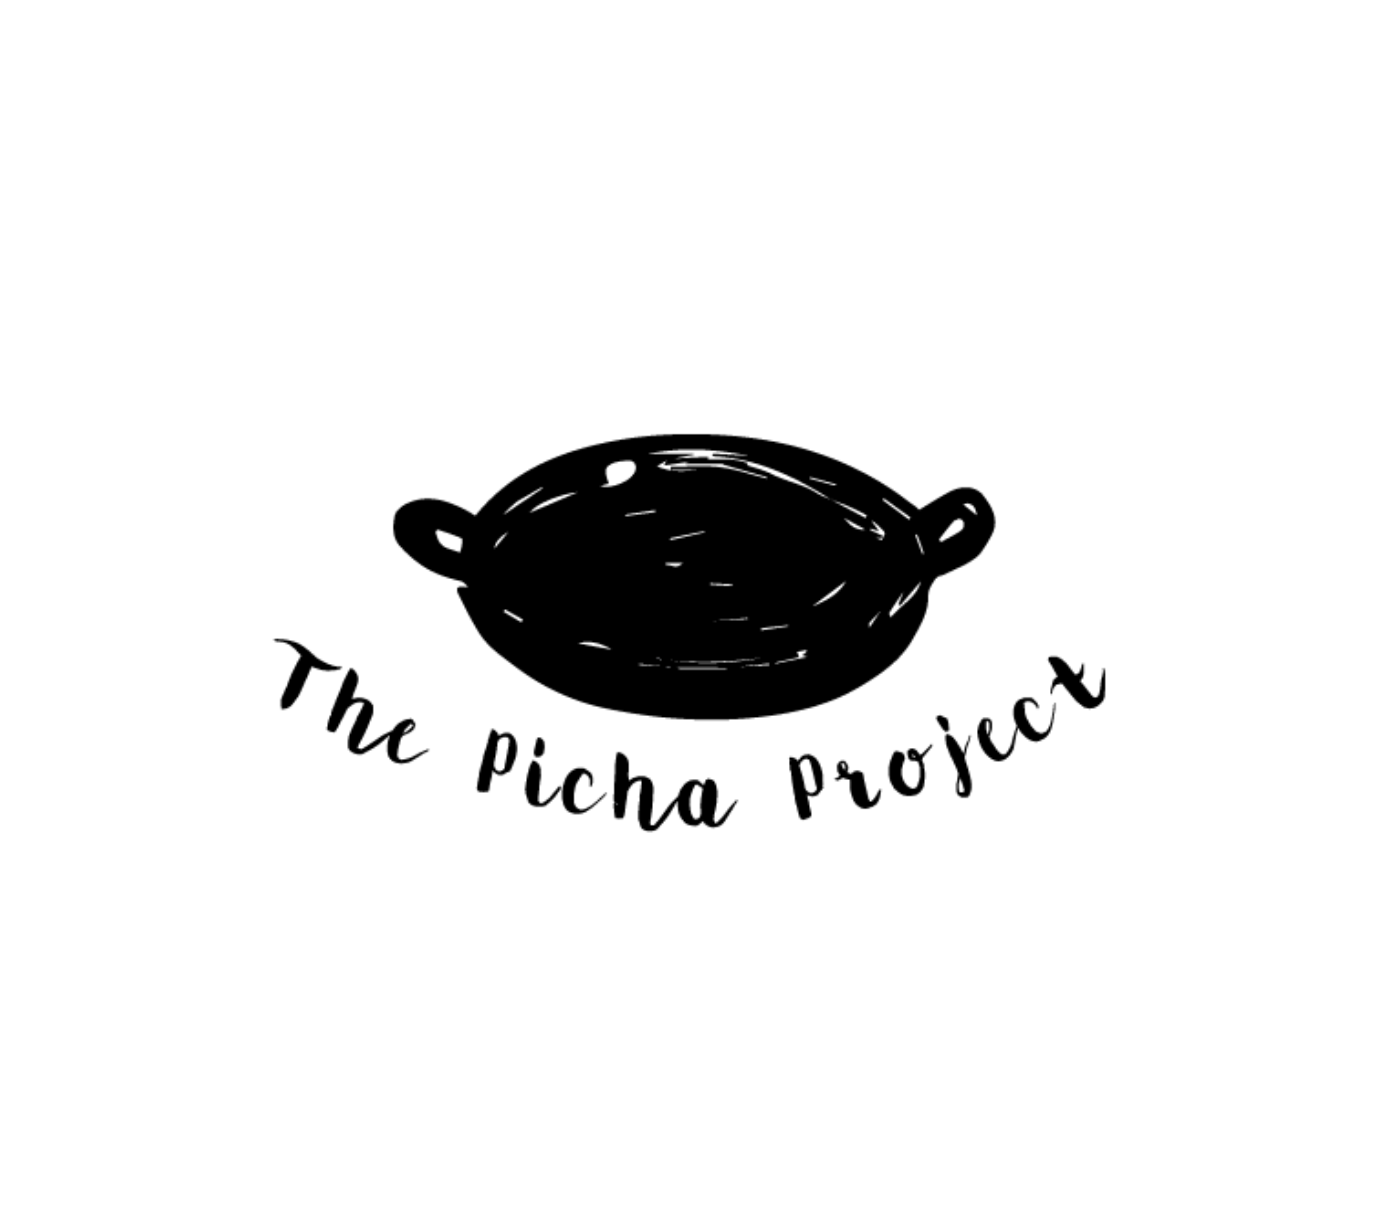 Image from The Picha Project